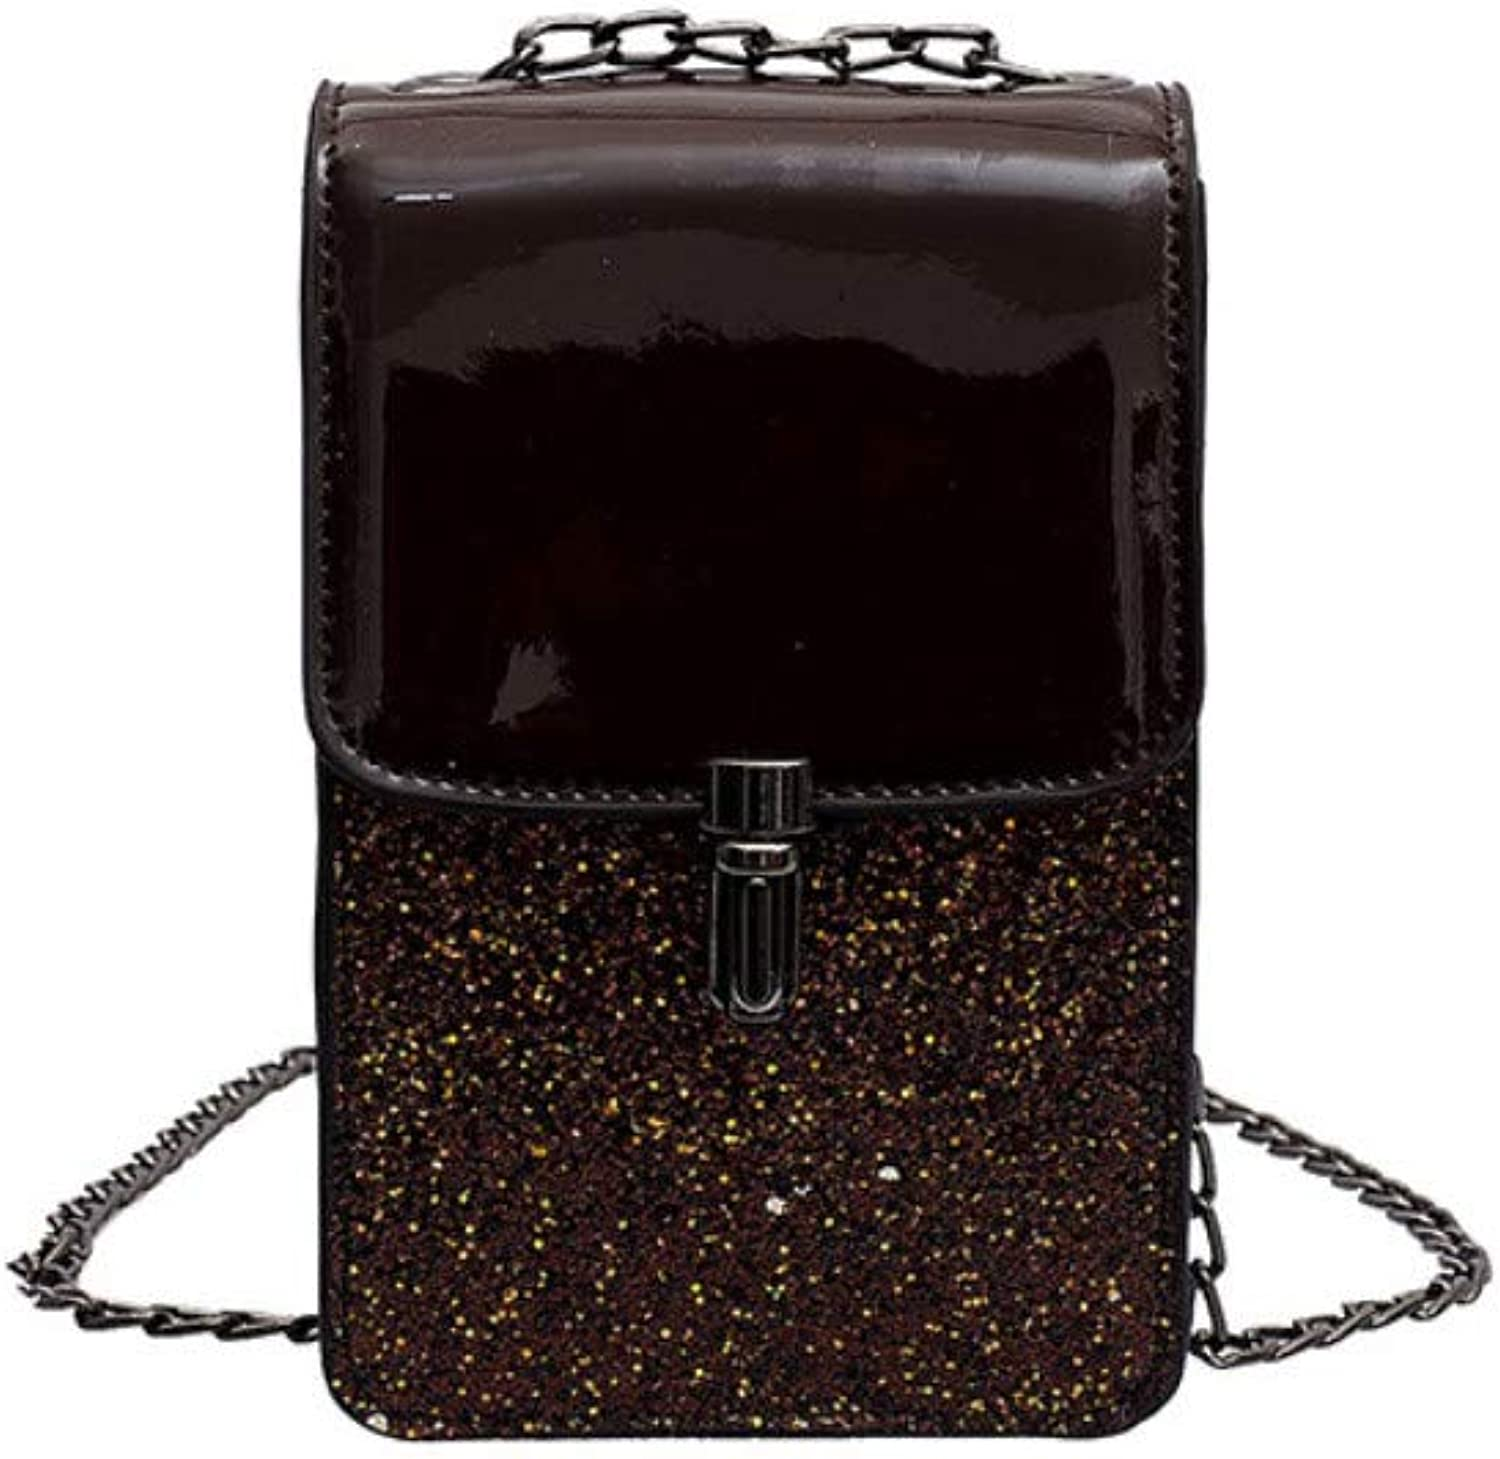 CLEBAO Trend, Sequins, Texture, one Shoulder, Crossbody, Small Square Bag